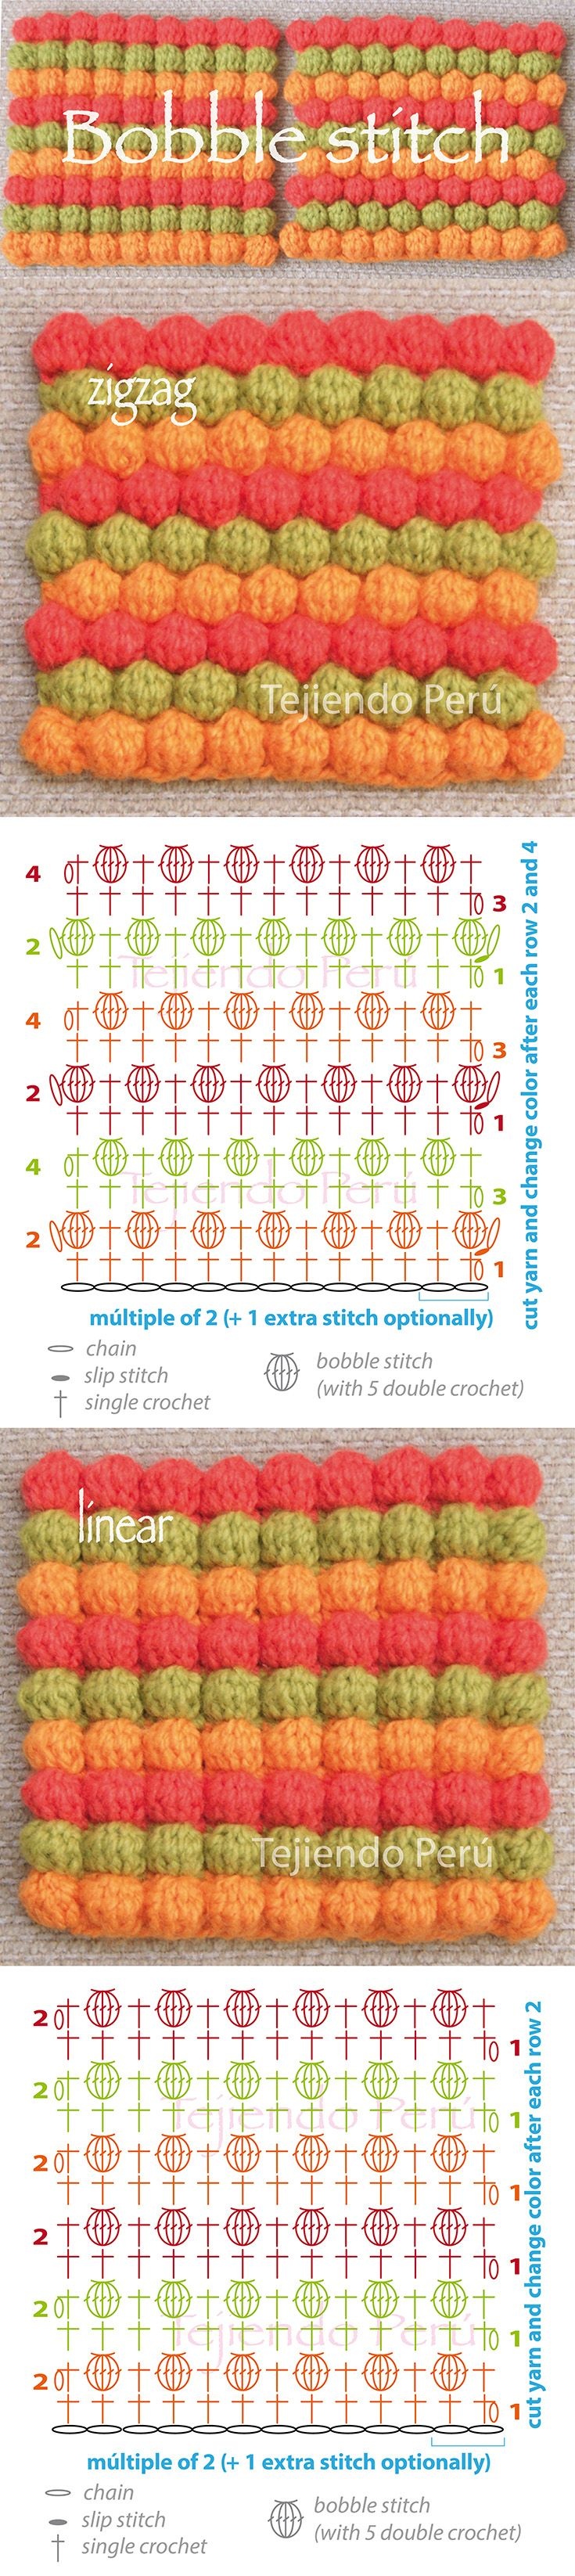 Crochet bobble stitch pattern: zigzag and linear! (diagram or chart ...